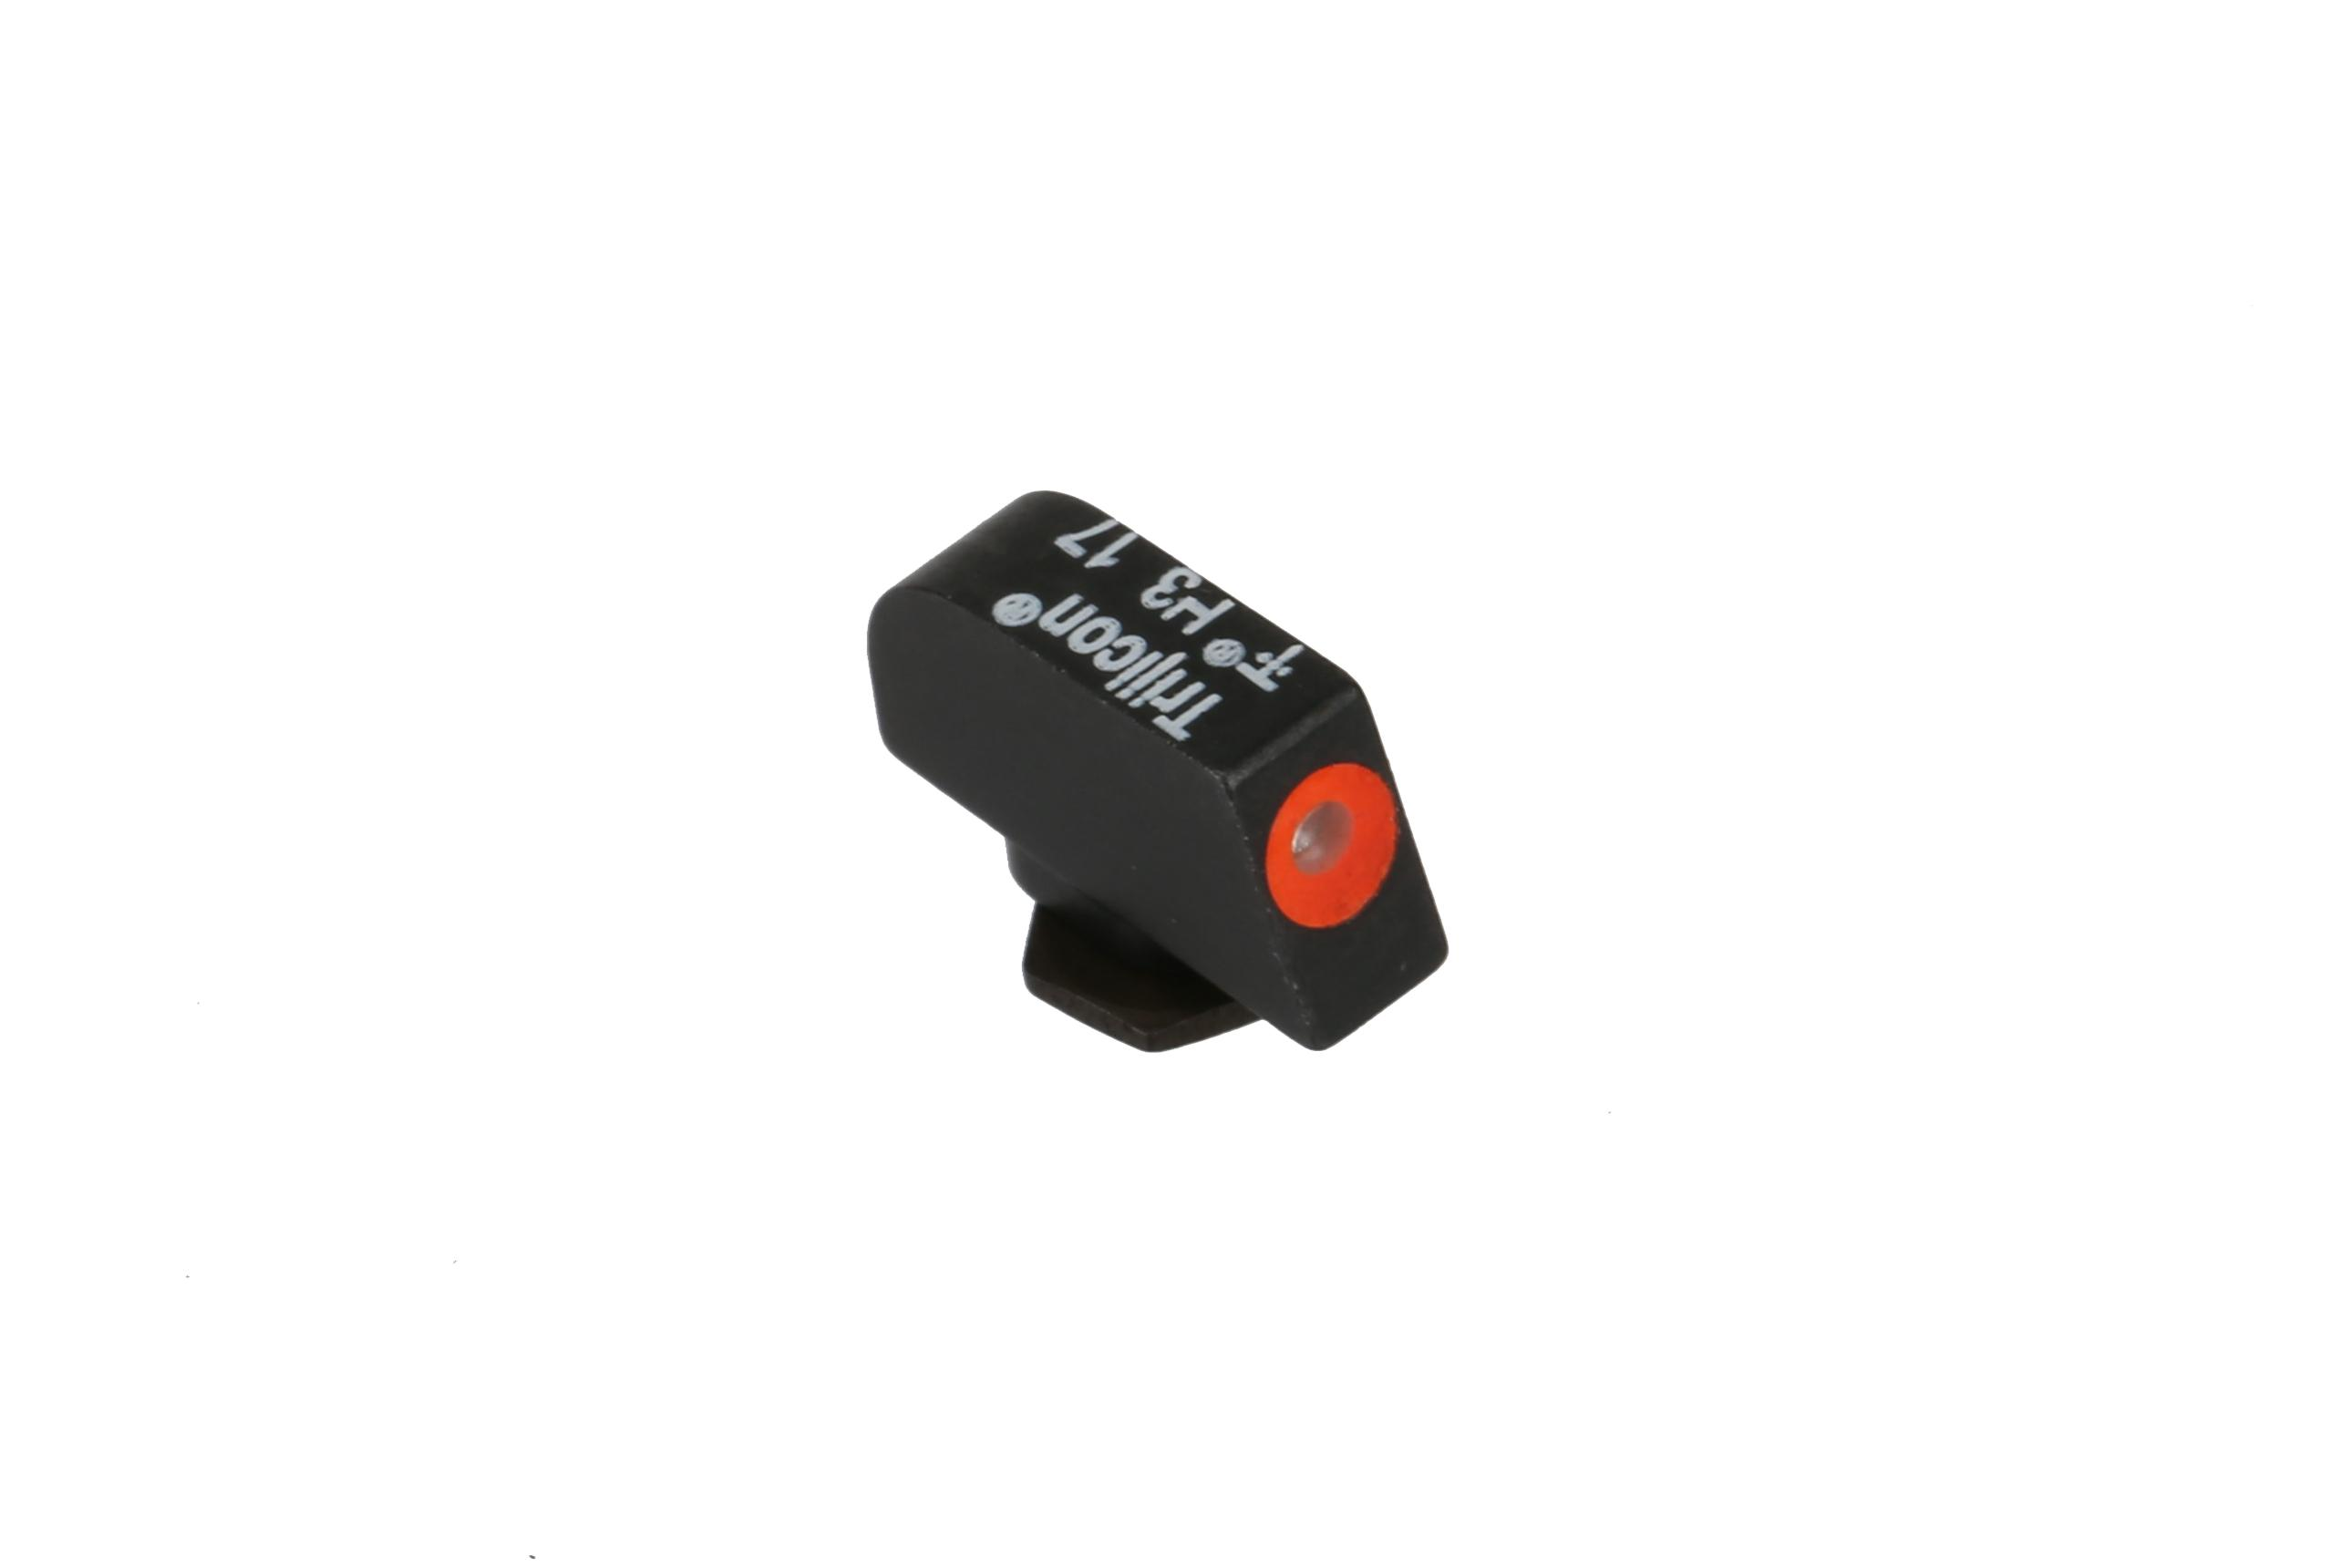 The Trijicon HD XR Glock Tritium Night sights features a traditional three dot sight arrangement